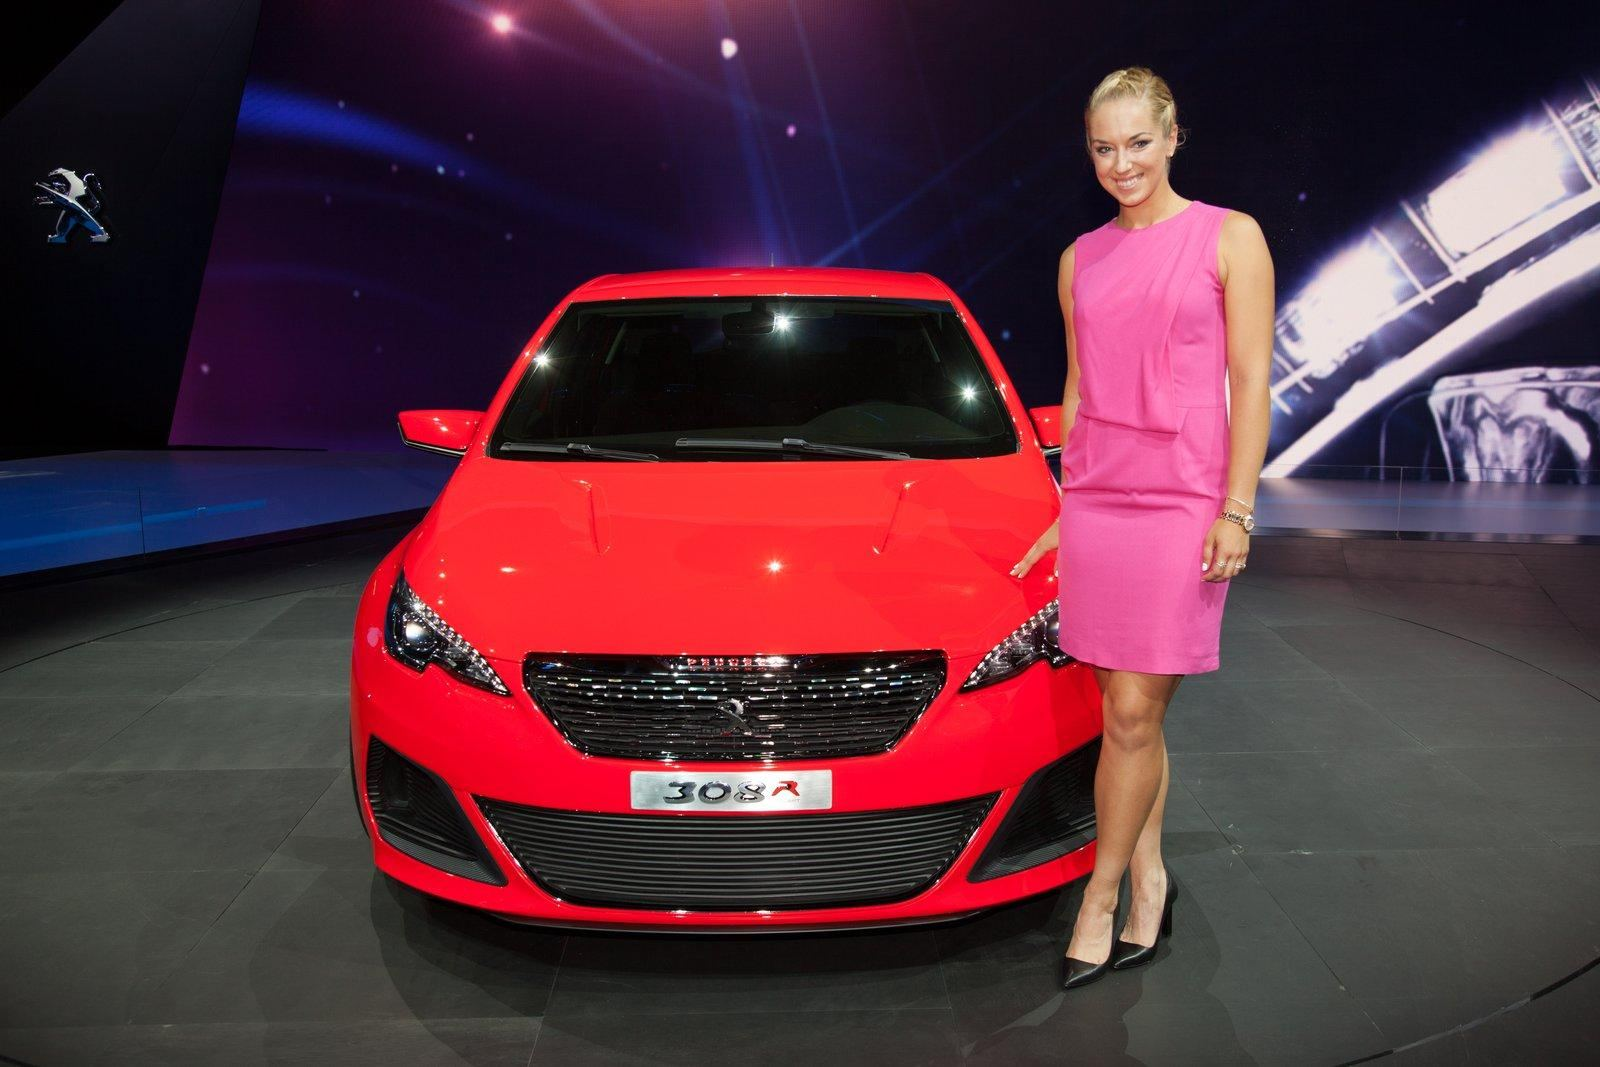 Peugeot 308 R Concept 2015 photo 103795 pictures at high resolution